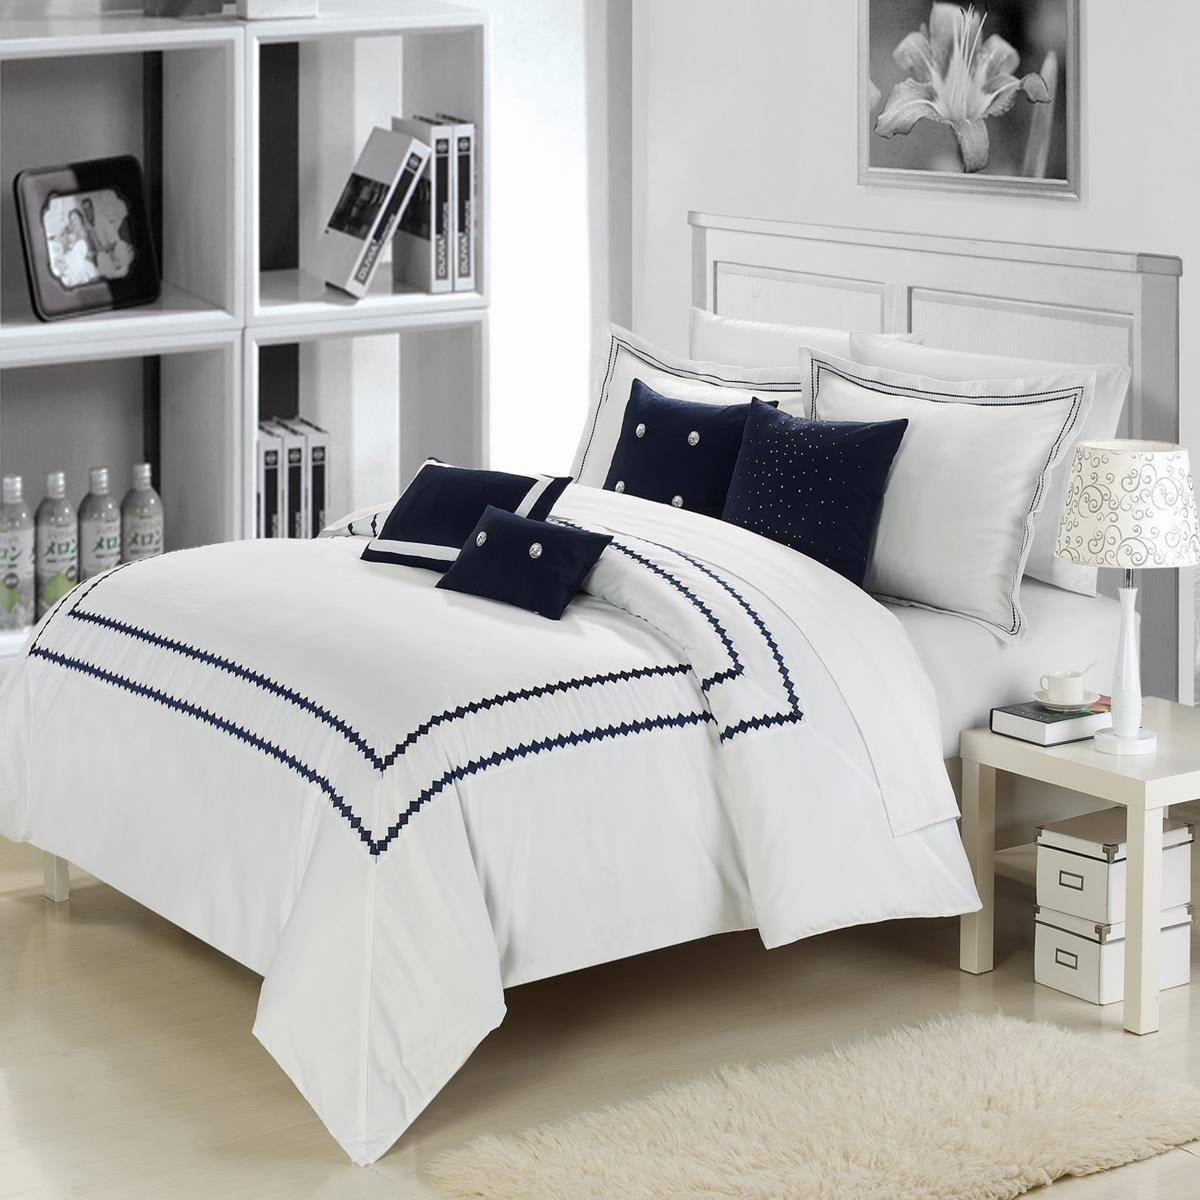 Image of: Blue and White Bedding Sets King